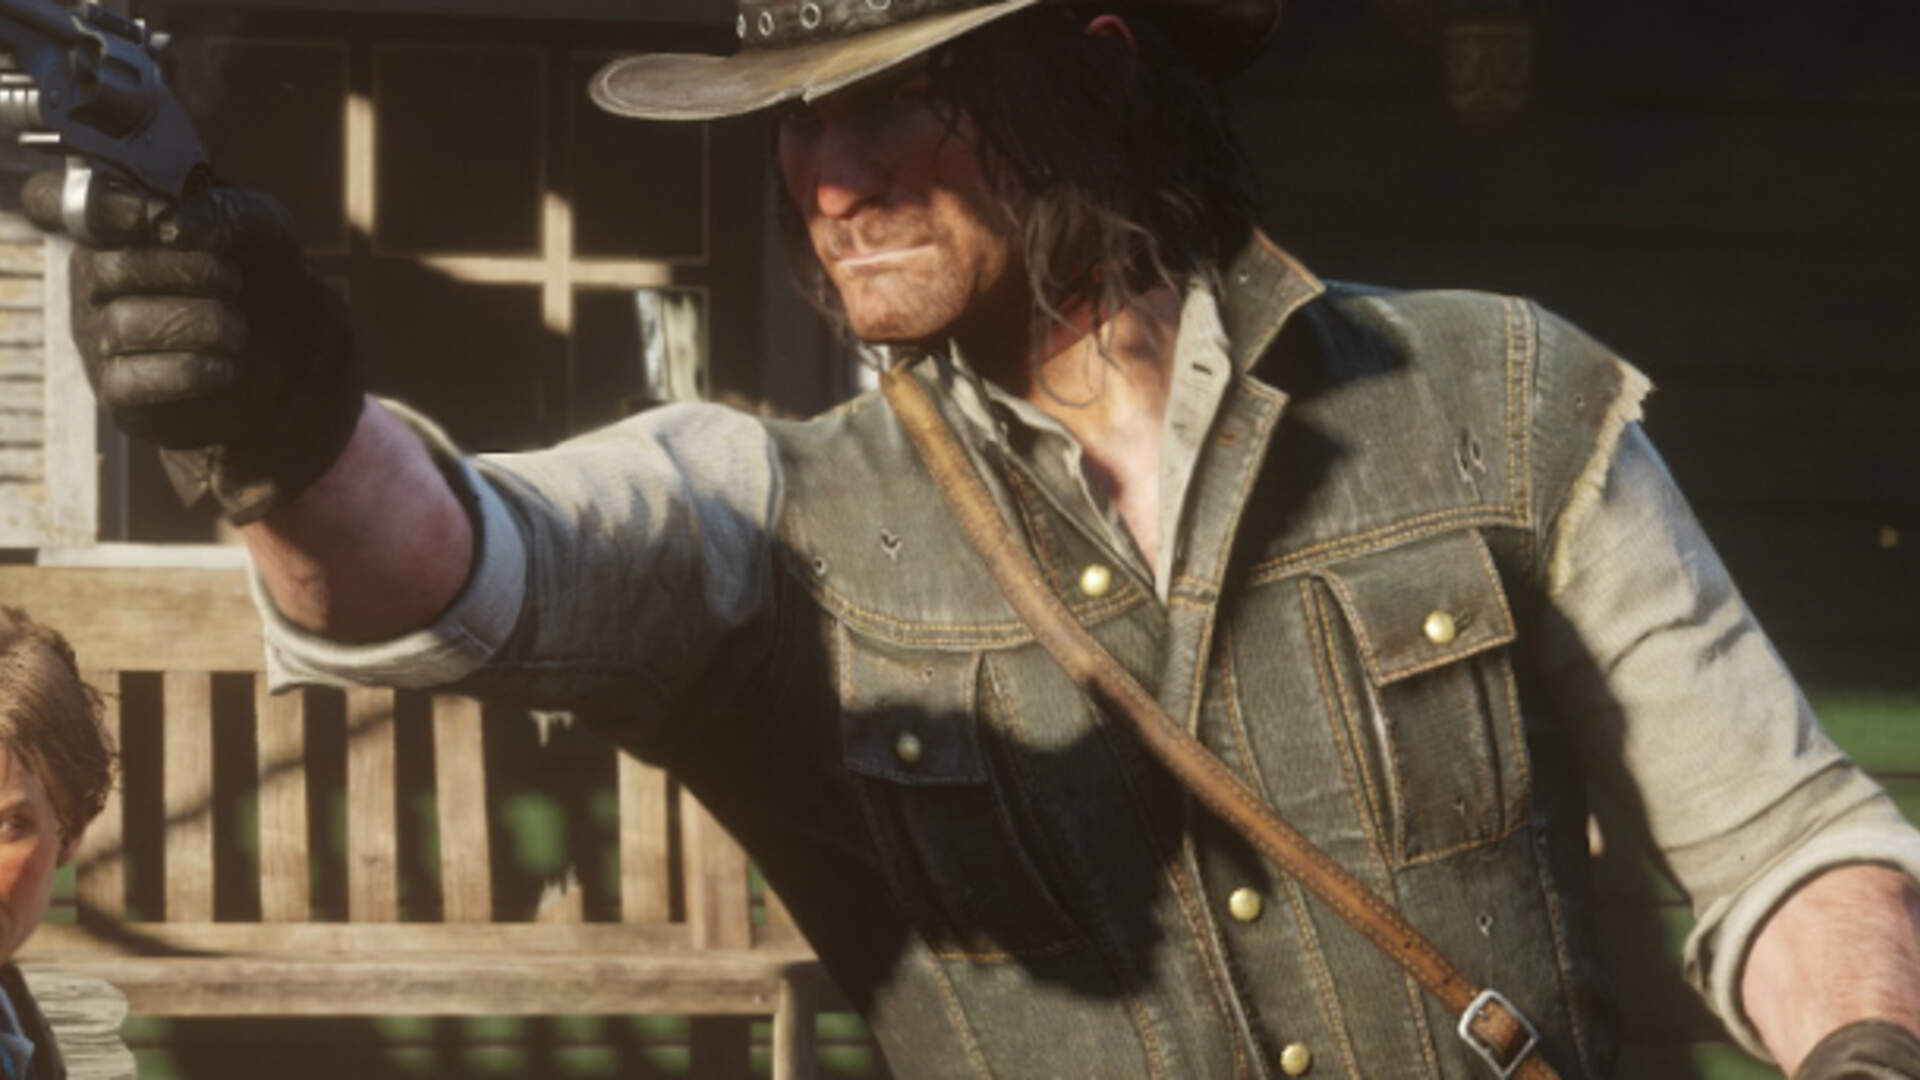 6 Takeaways From the New Red Dead Redemption 2 Trailer